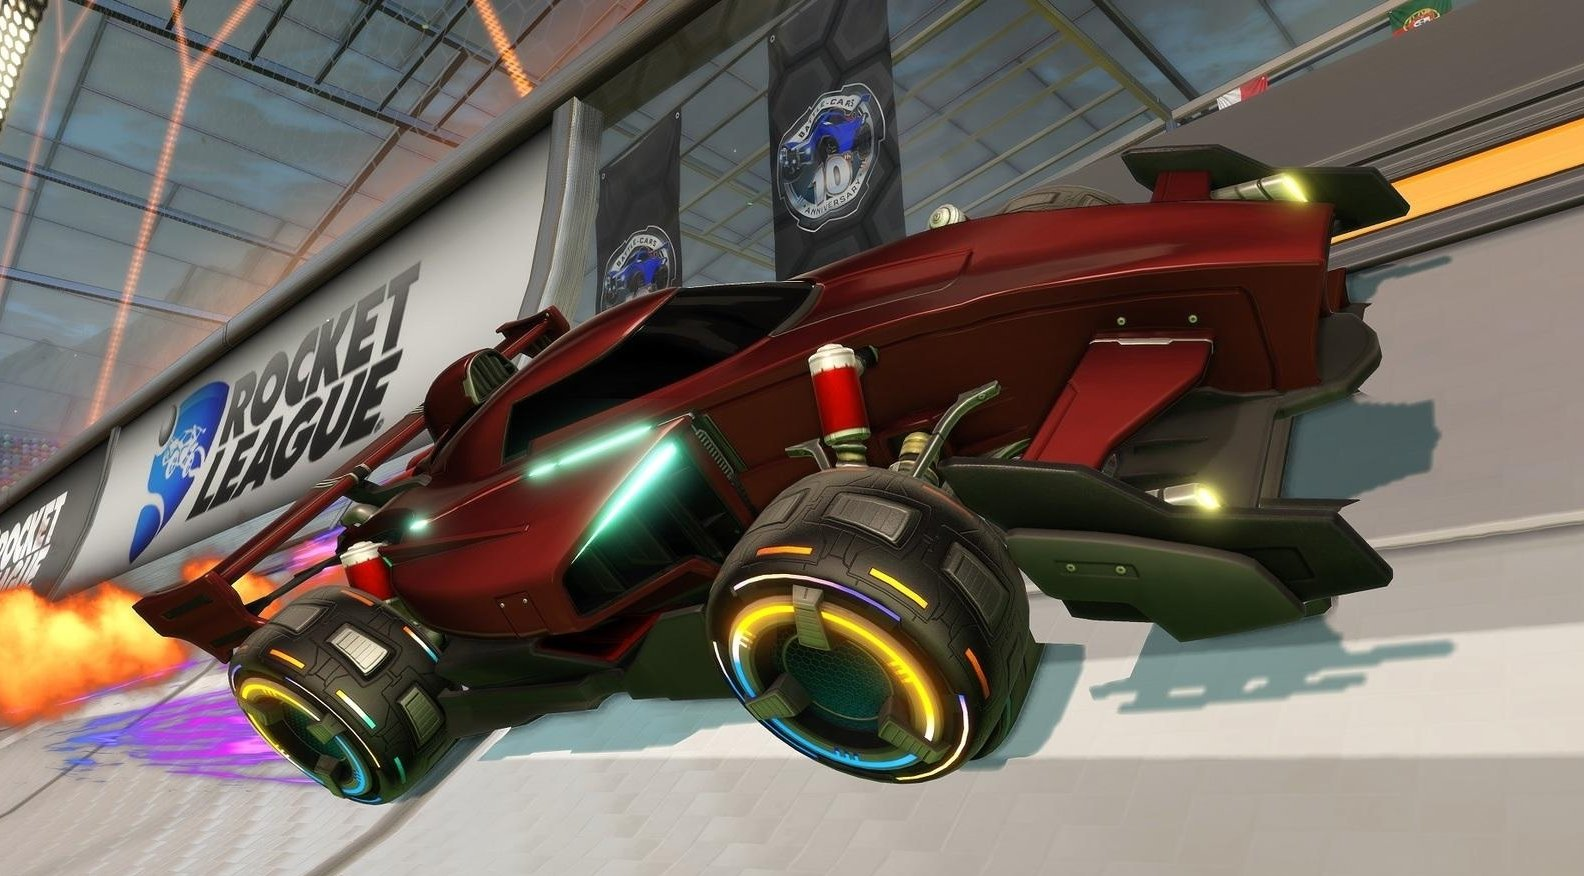 Epic acquiert Psyonix, développeur de Rocket League